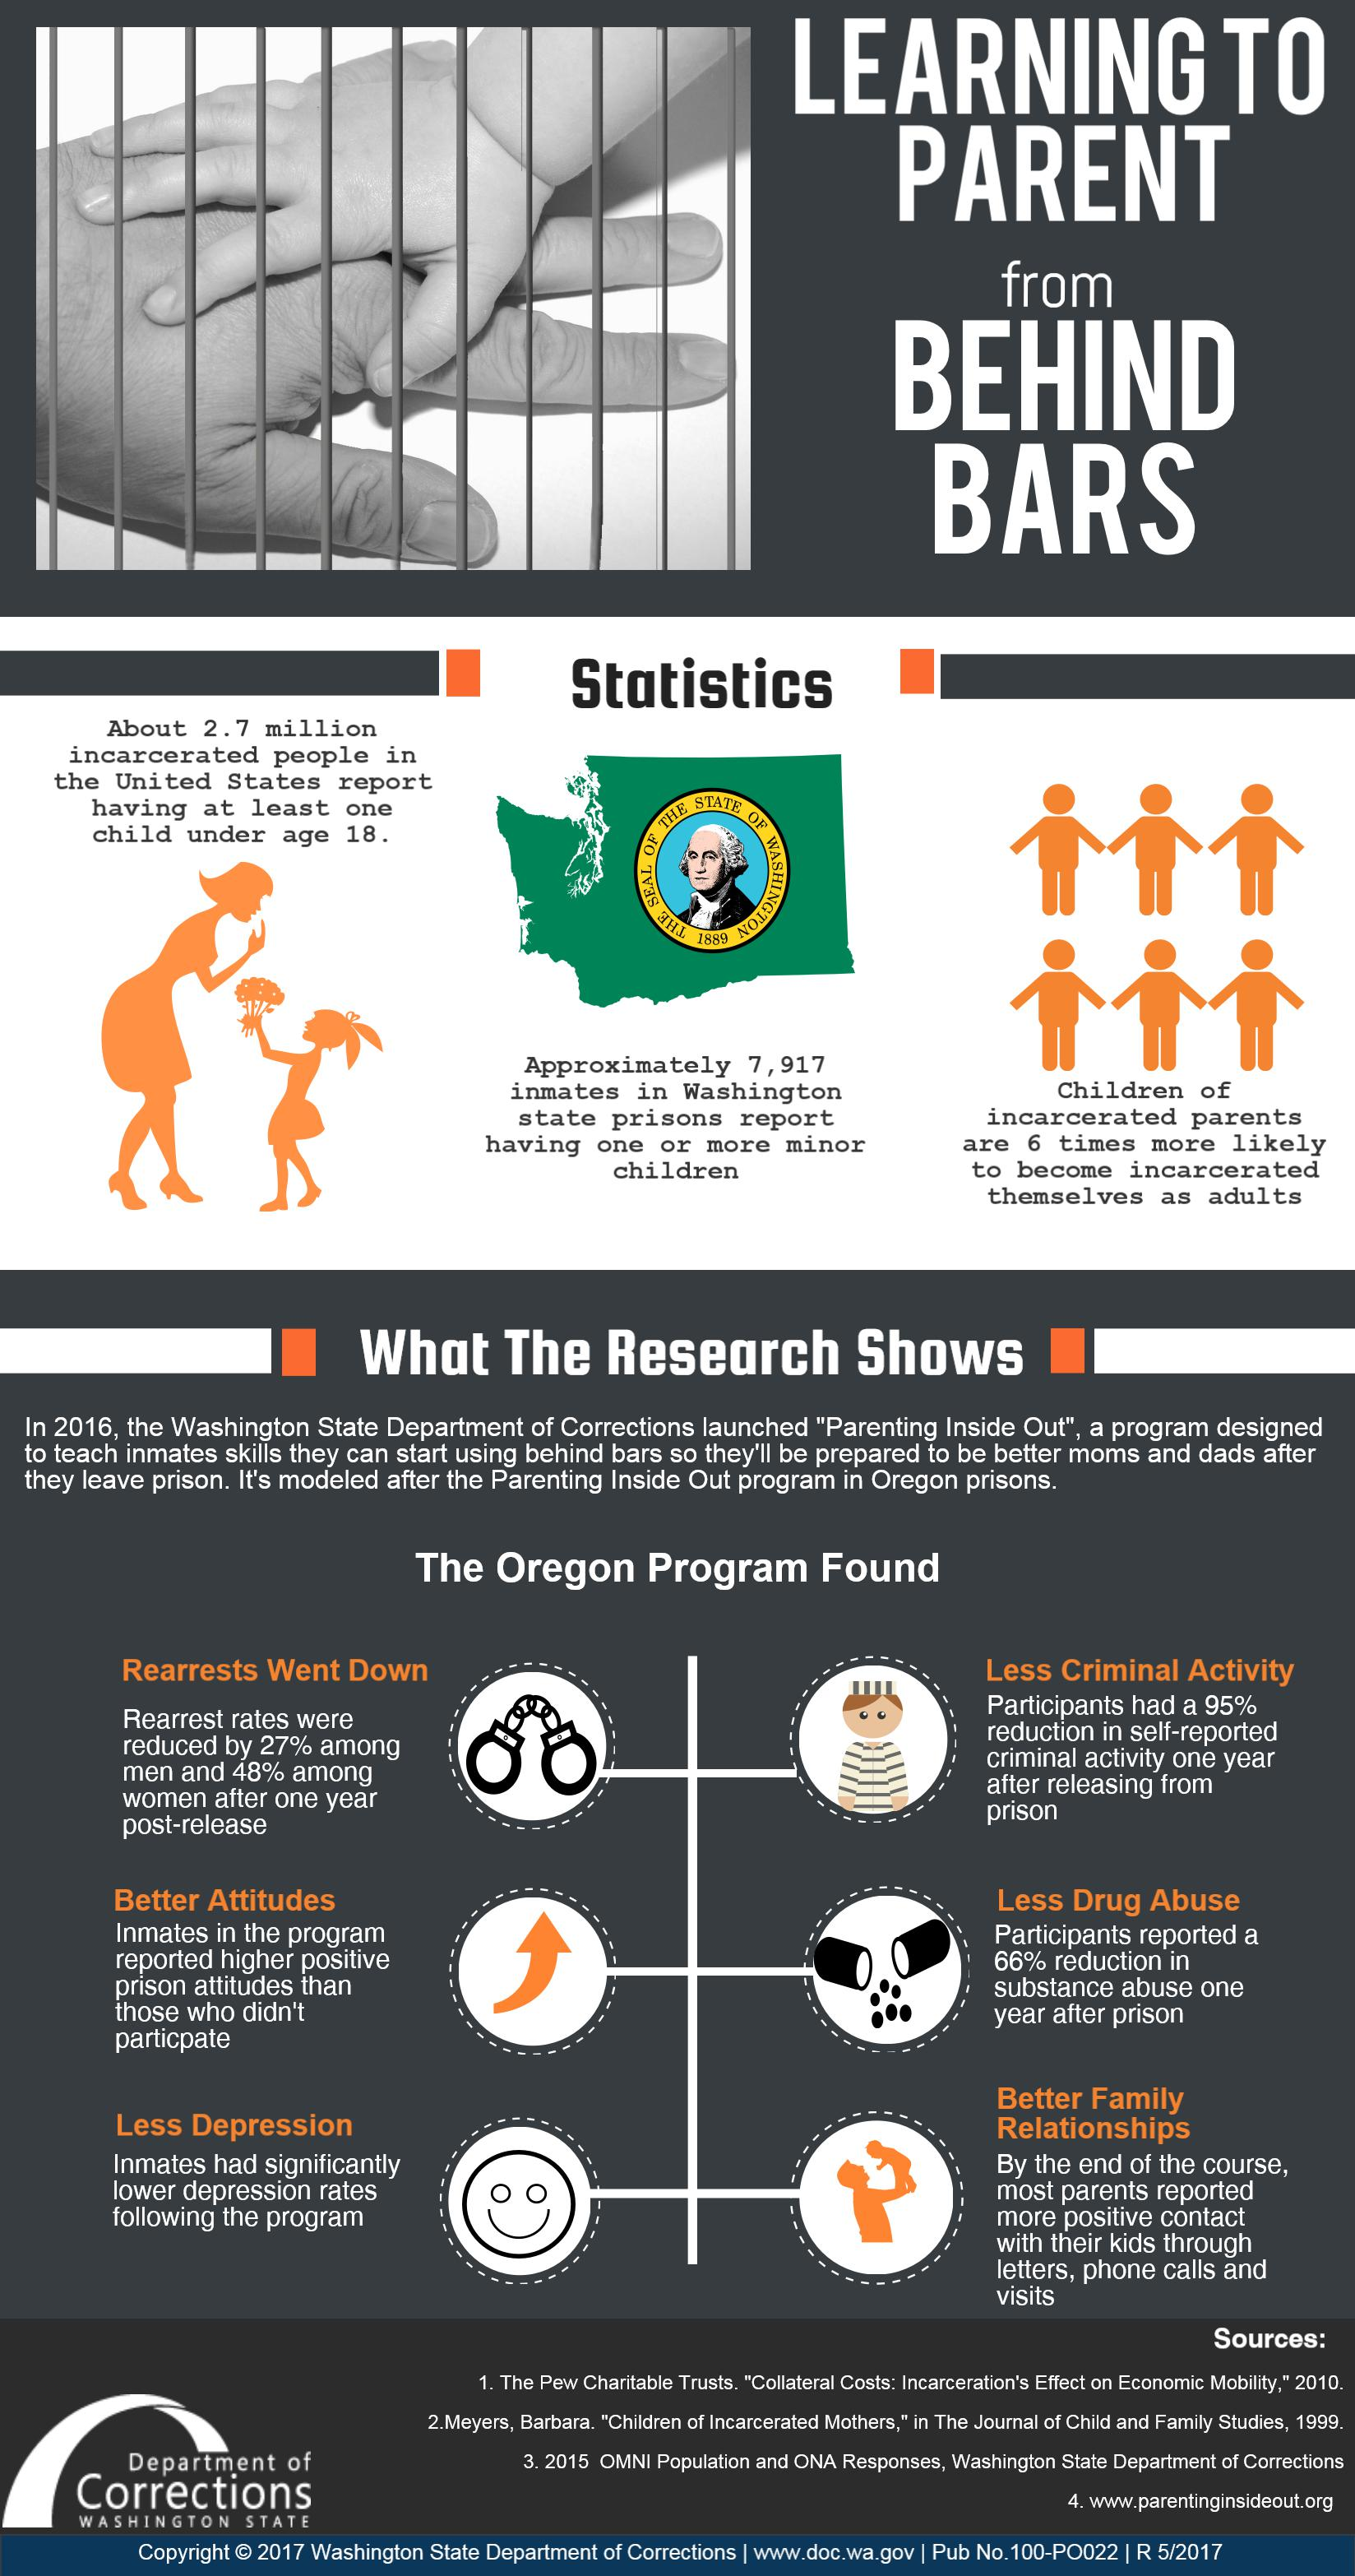 Infographic Learning To Parent From Behind Bars